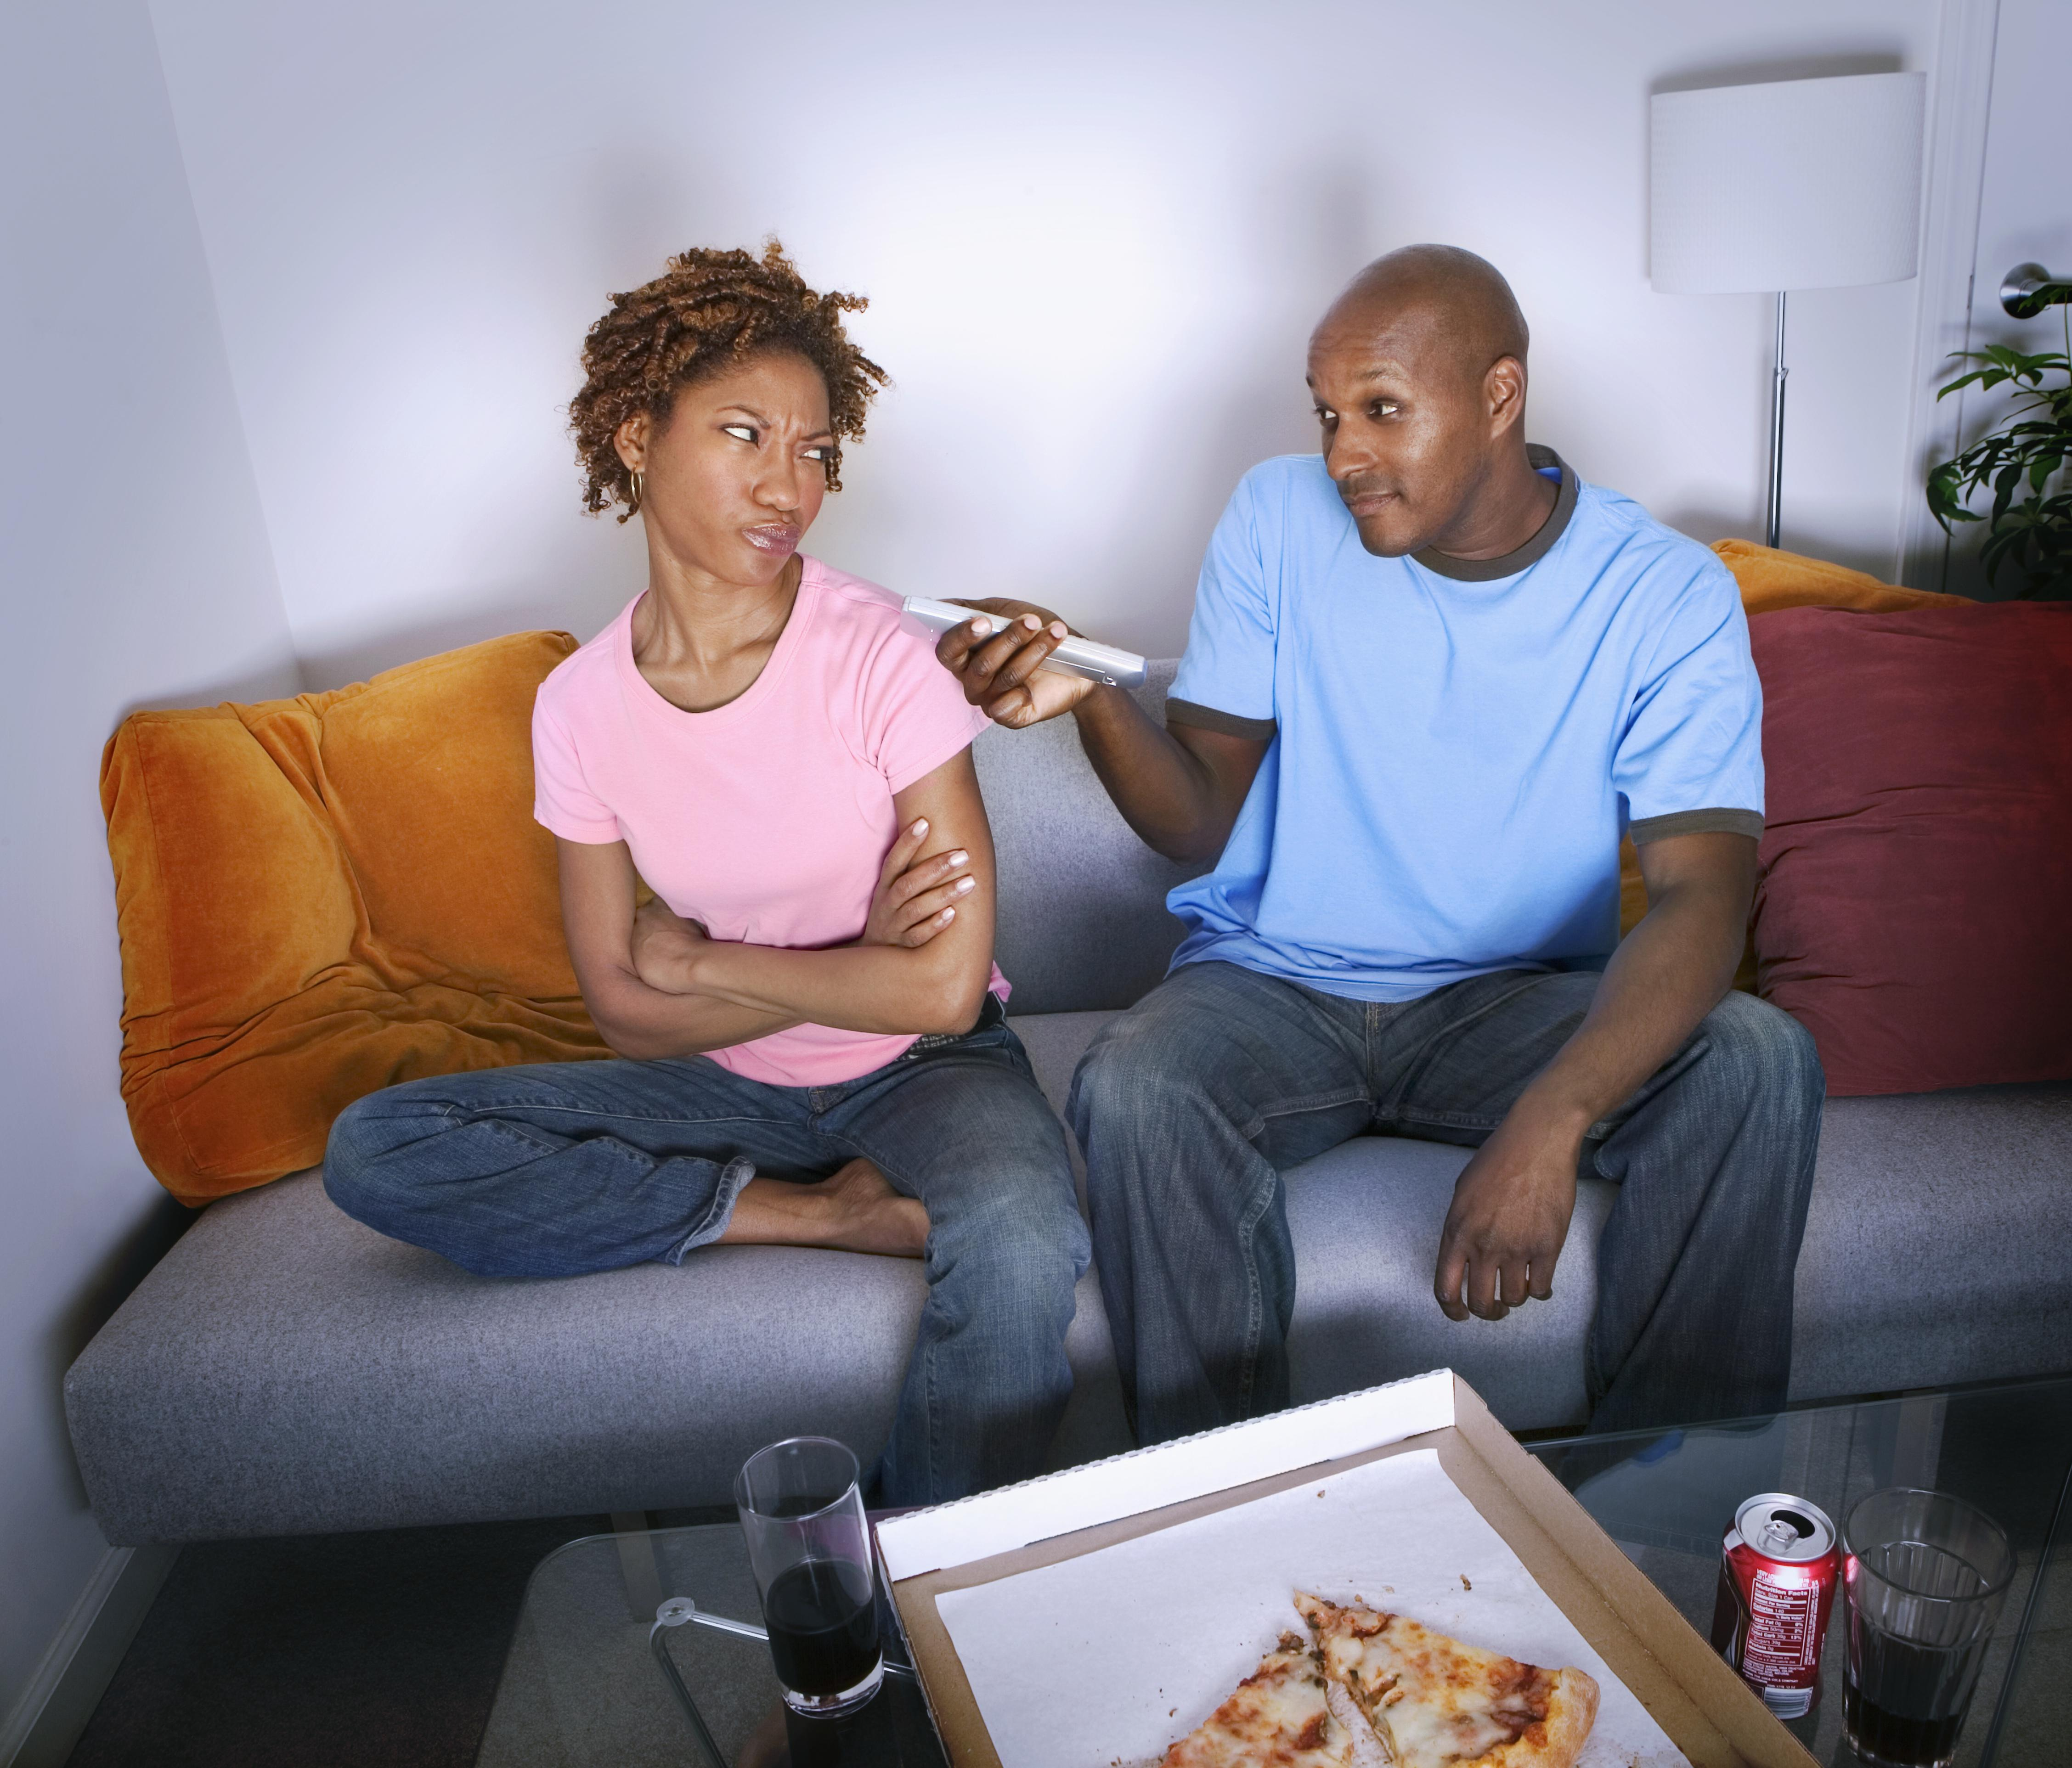 African man pointing remote control at annoyed girlfriend